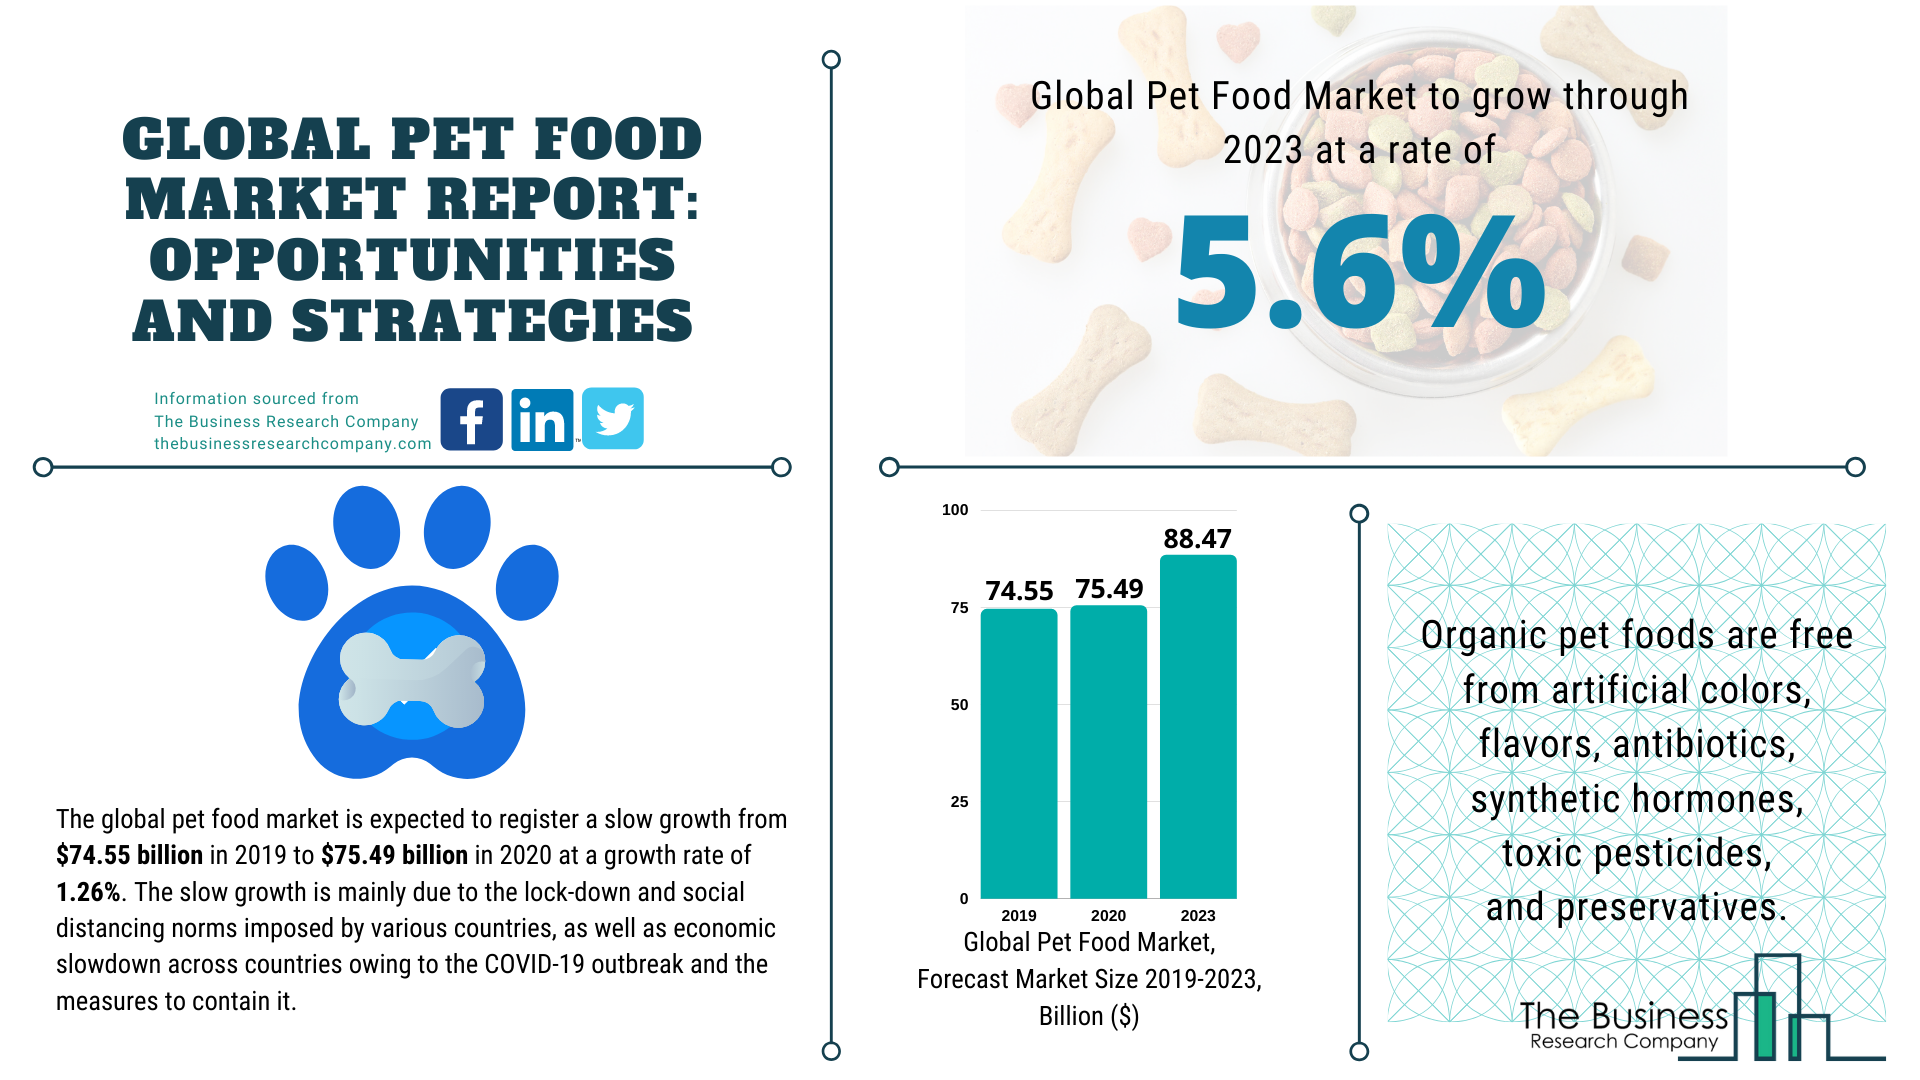 Global Pet Food Market Value Expected To Reach $88 Billion By 2023